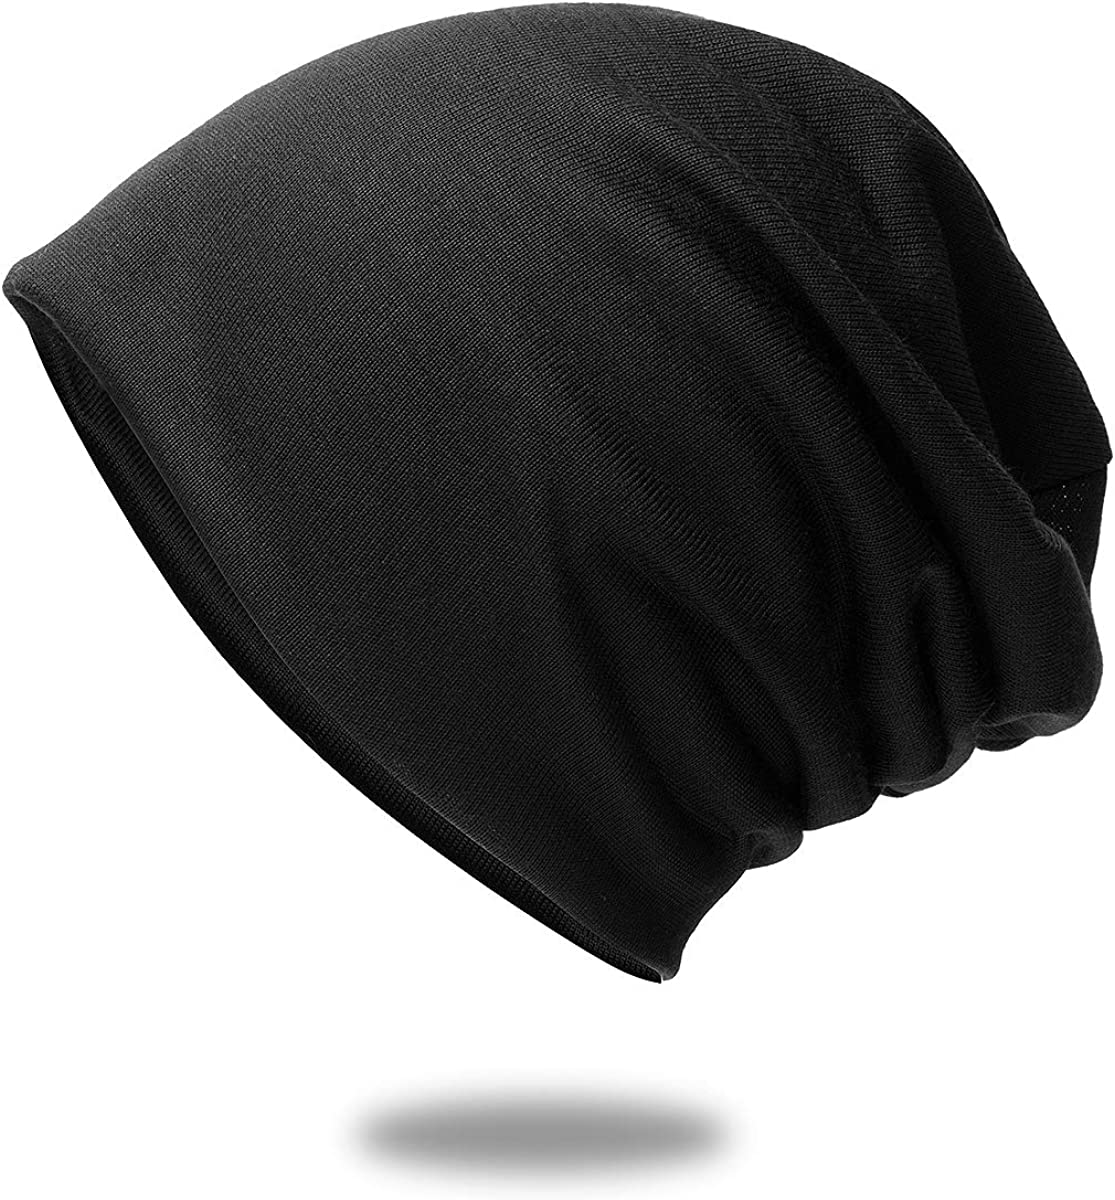 Trendy Stylish Beanie of Quality El Fabric Knit OFFicial latest shop Breathability